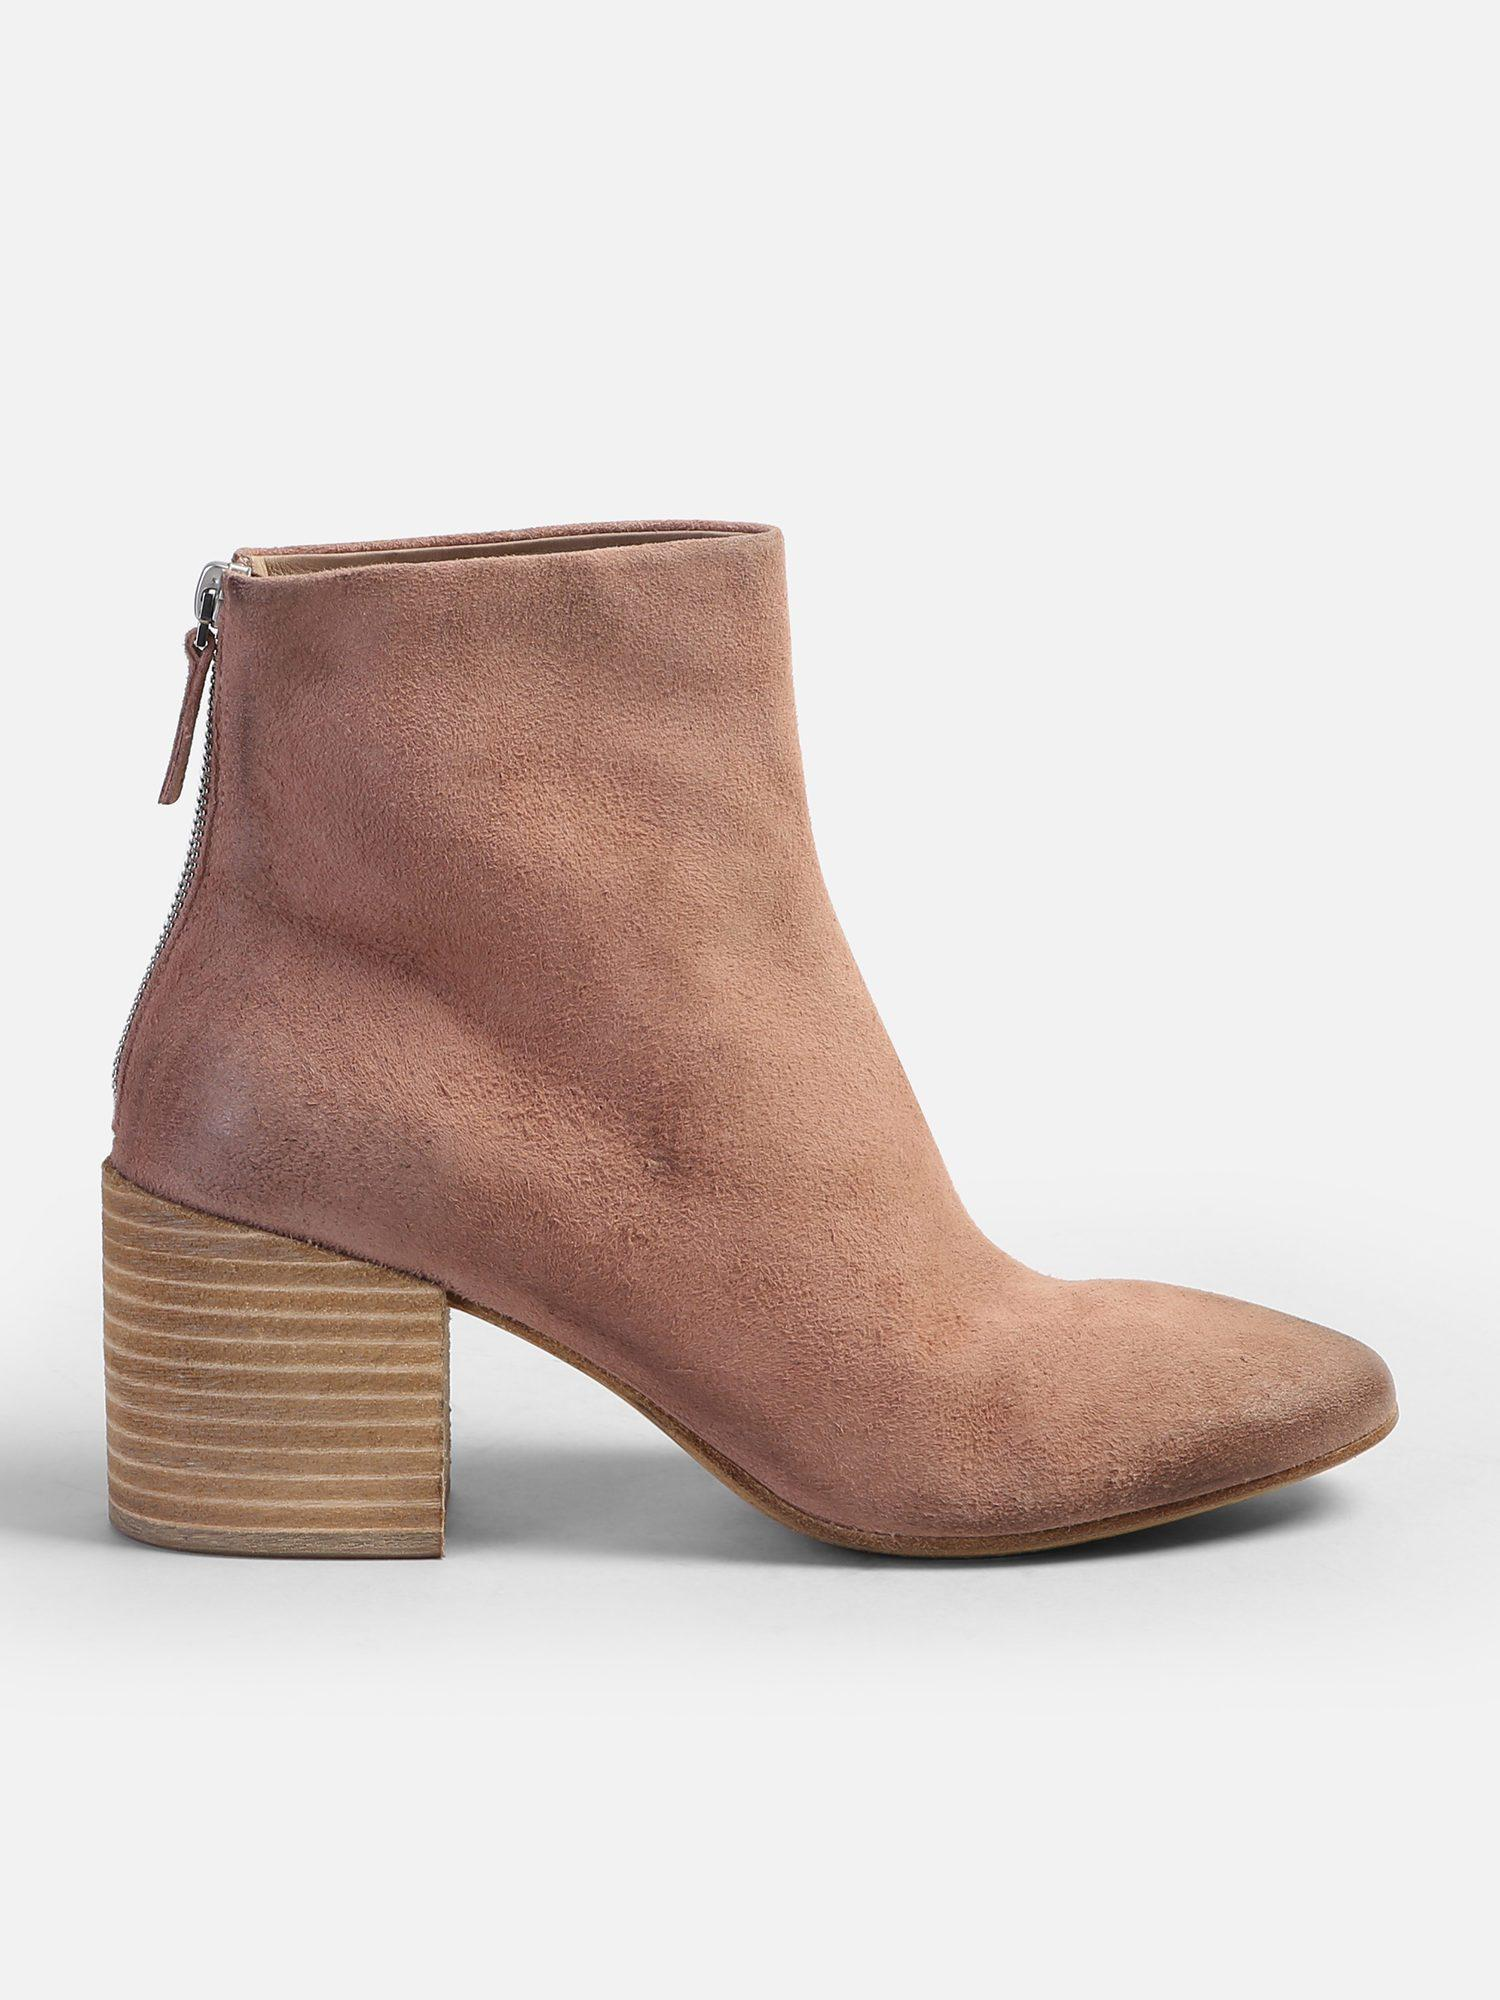 43eeb46634 Lyst - Marsèll Distressed Effect Leather Ankle Boots in Brown